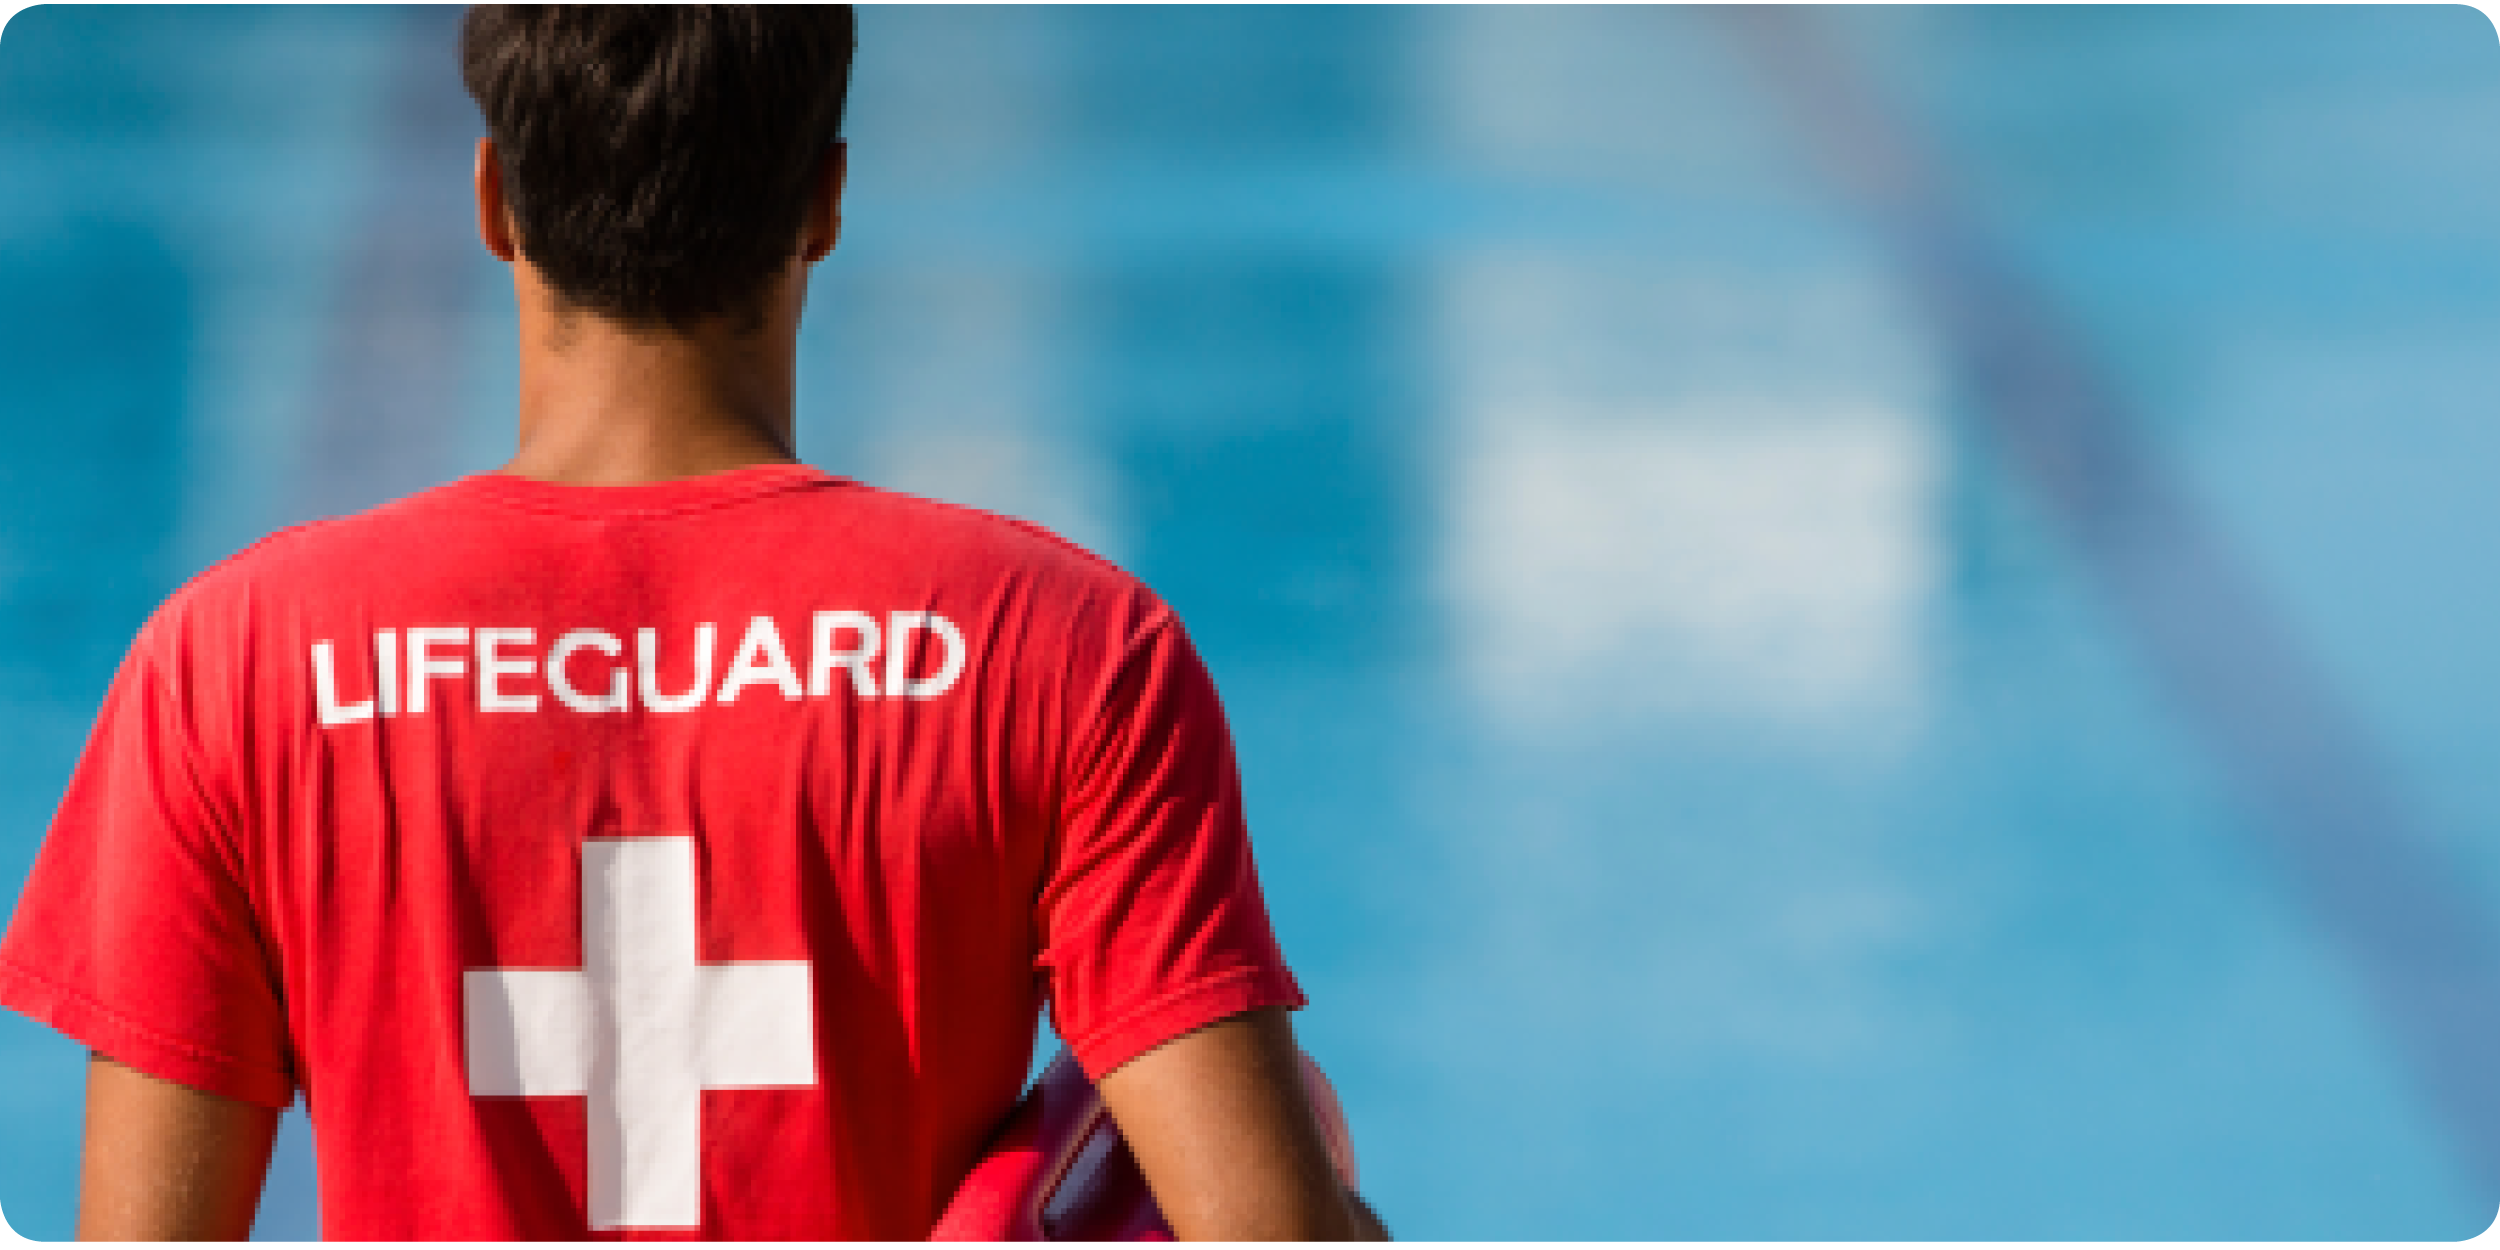 Lifeguard and CPR Training